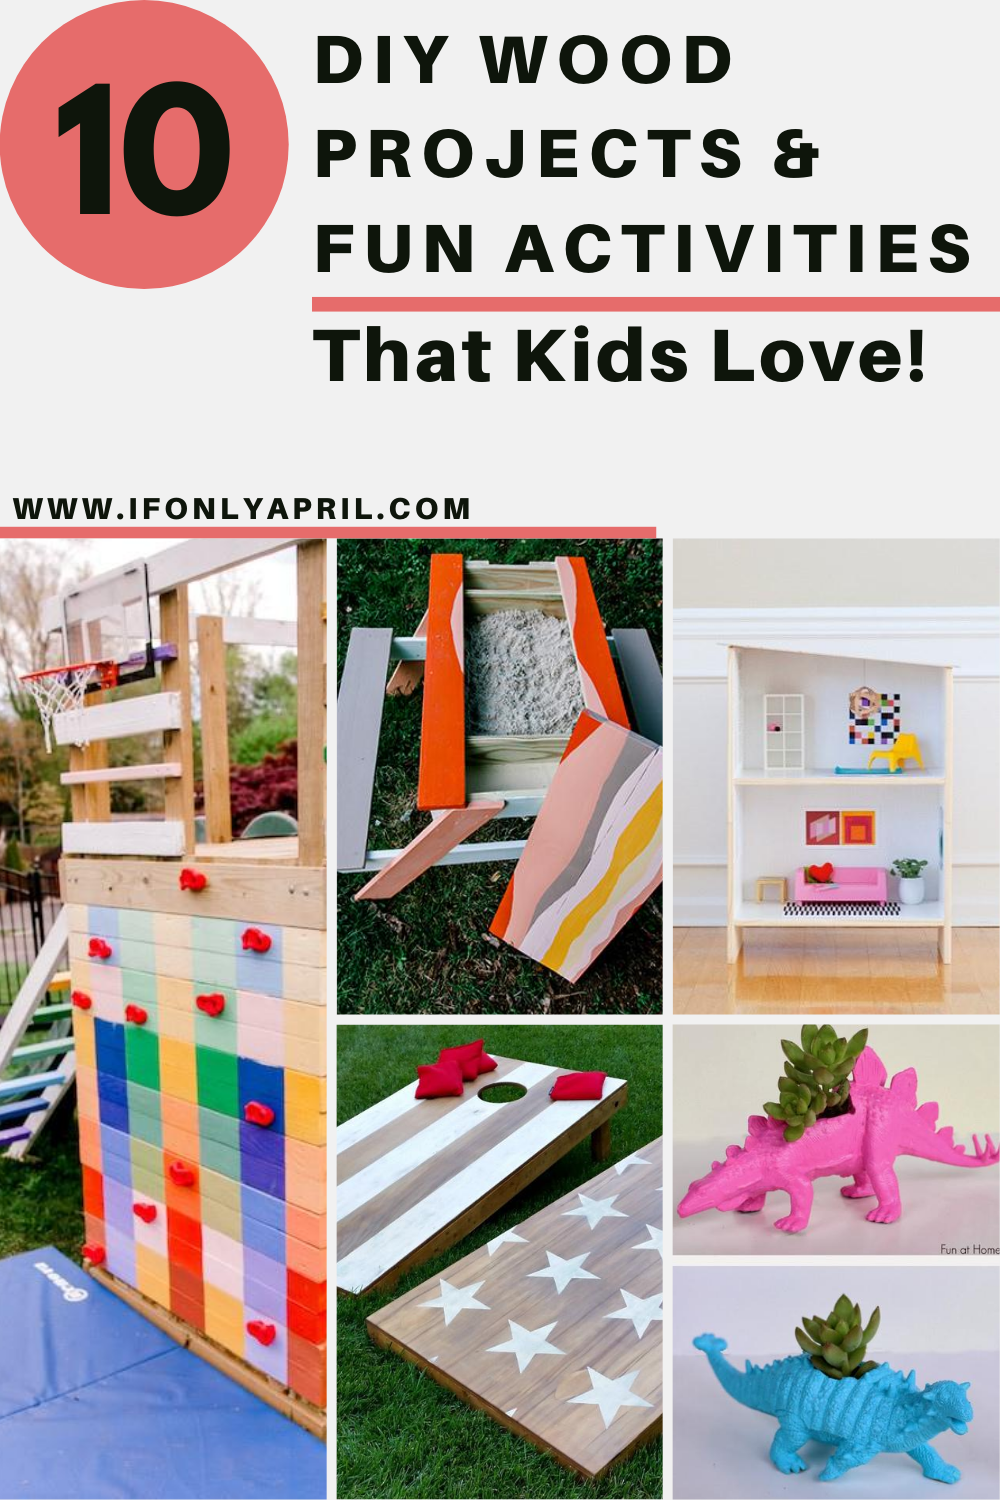 10 diy wood projects and fun activities for kids